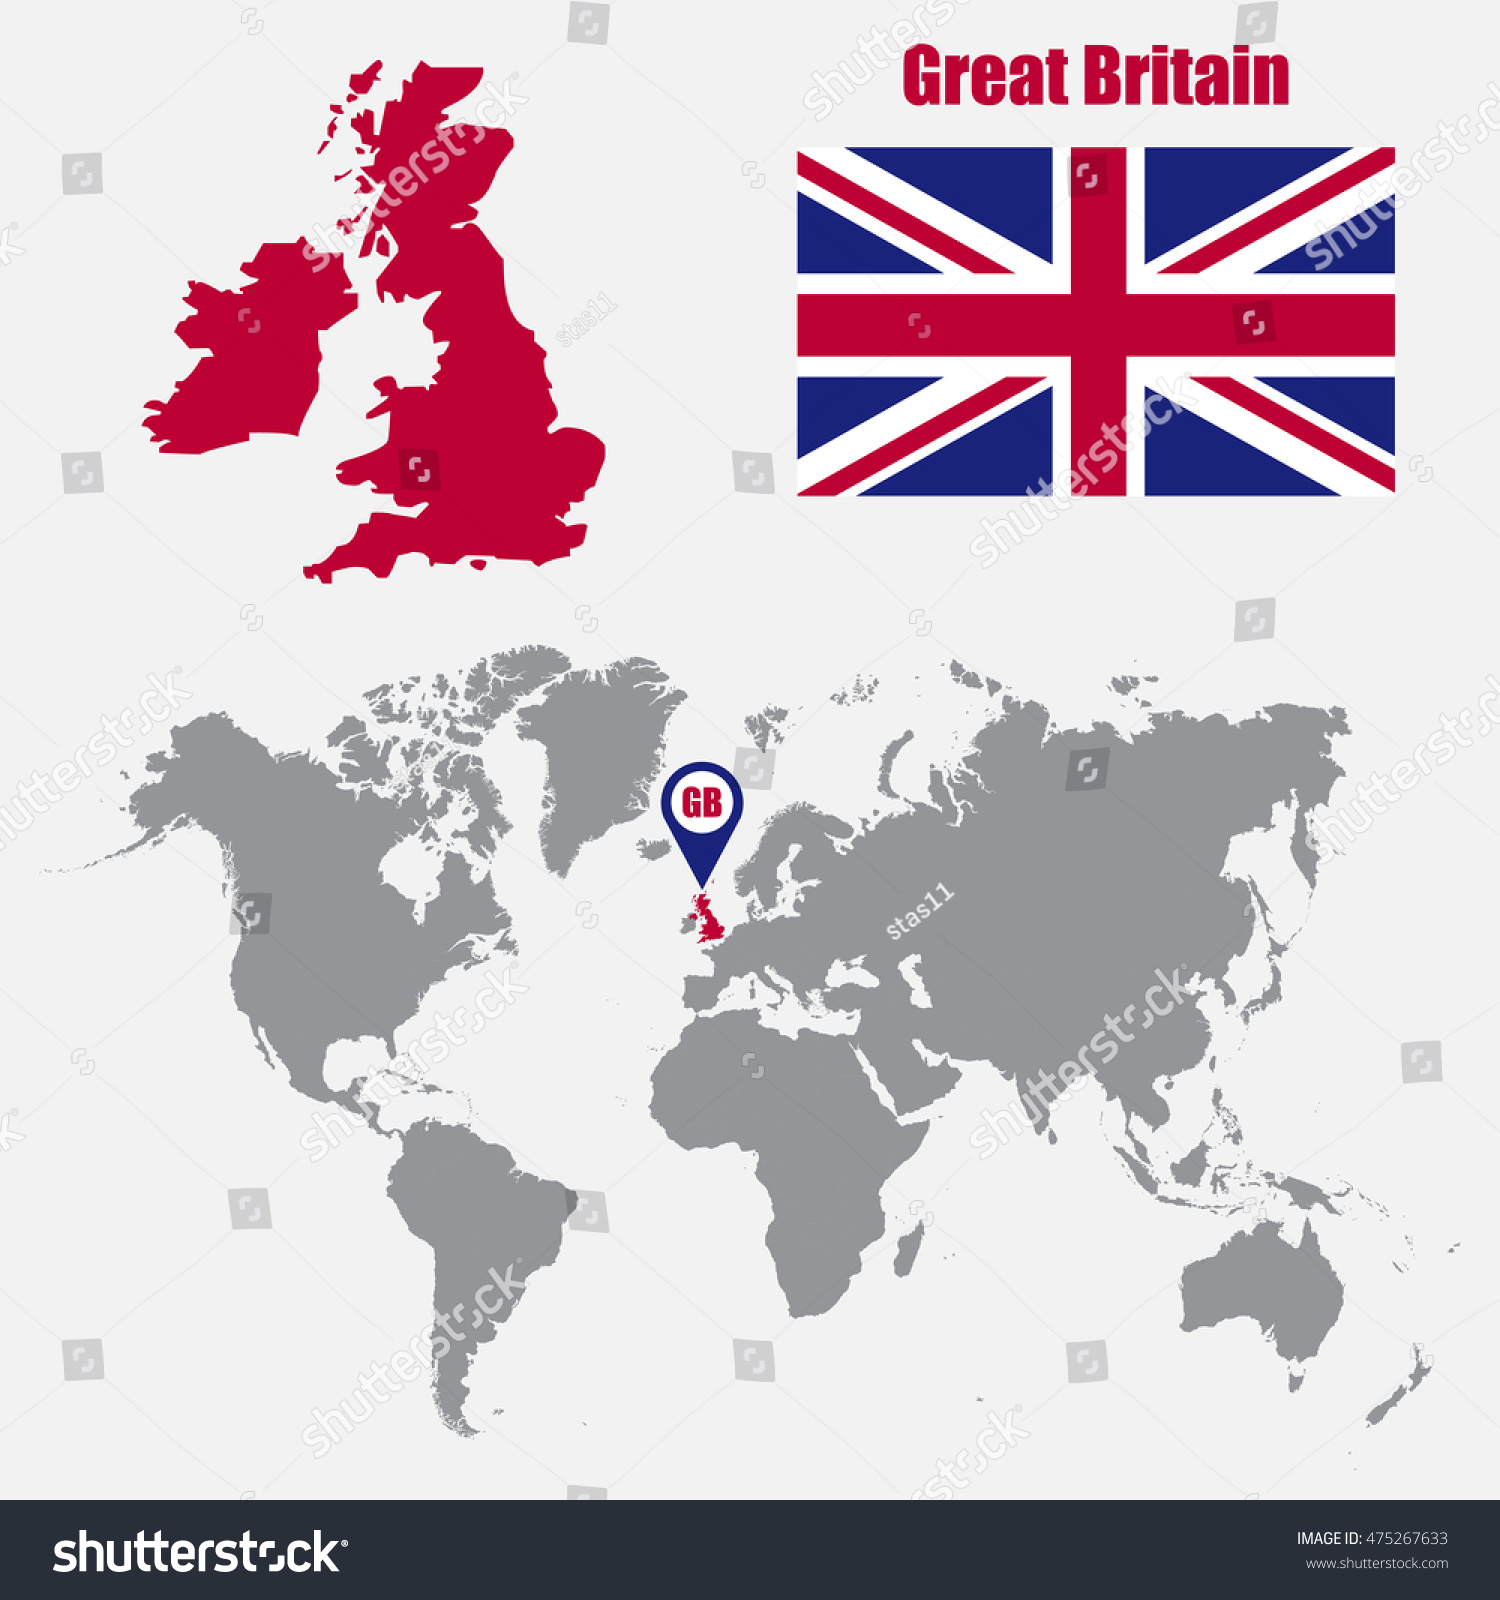 Uk In World Map.Uk Map On World Map Flag Stock Vector Royalty Free 475267633